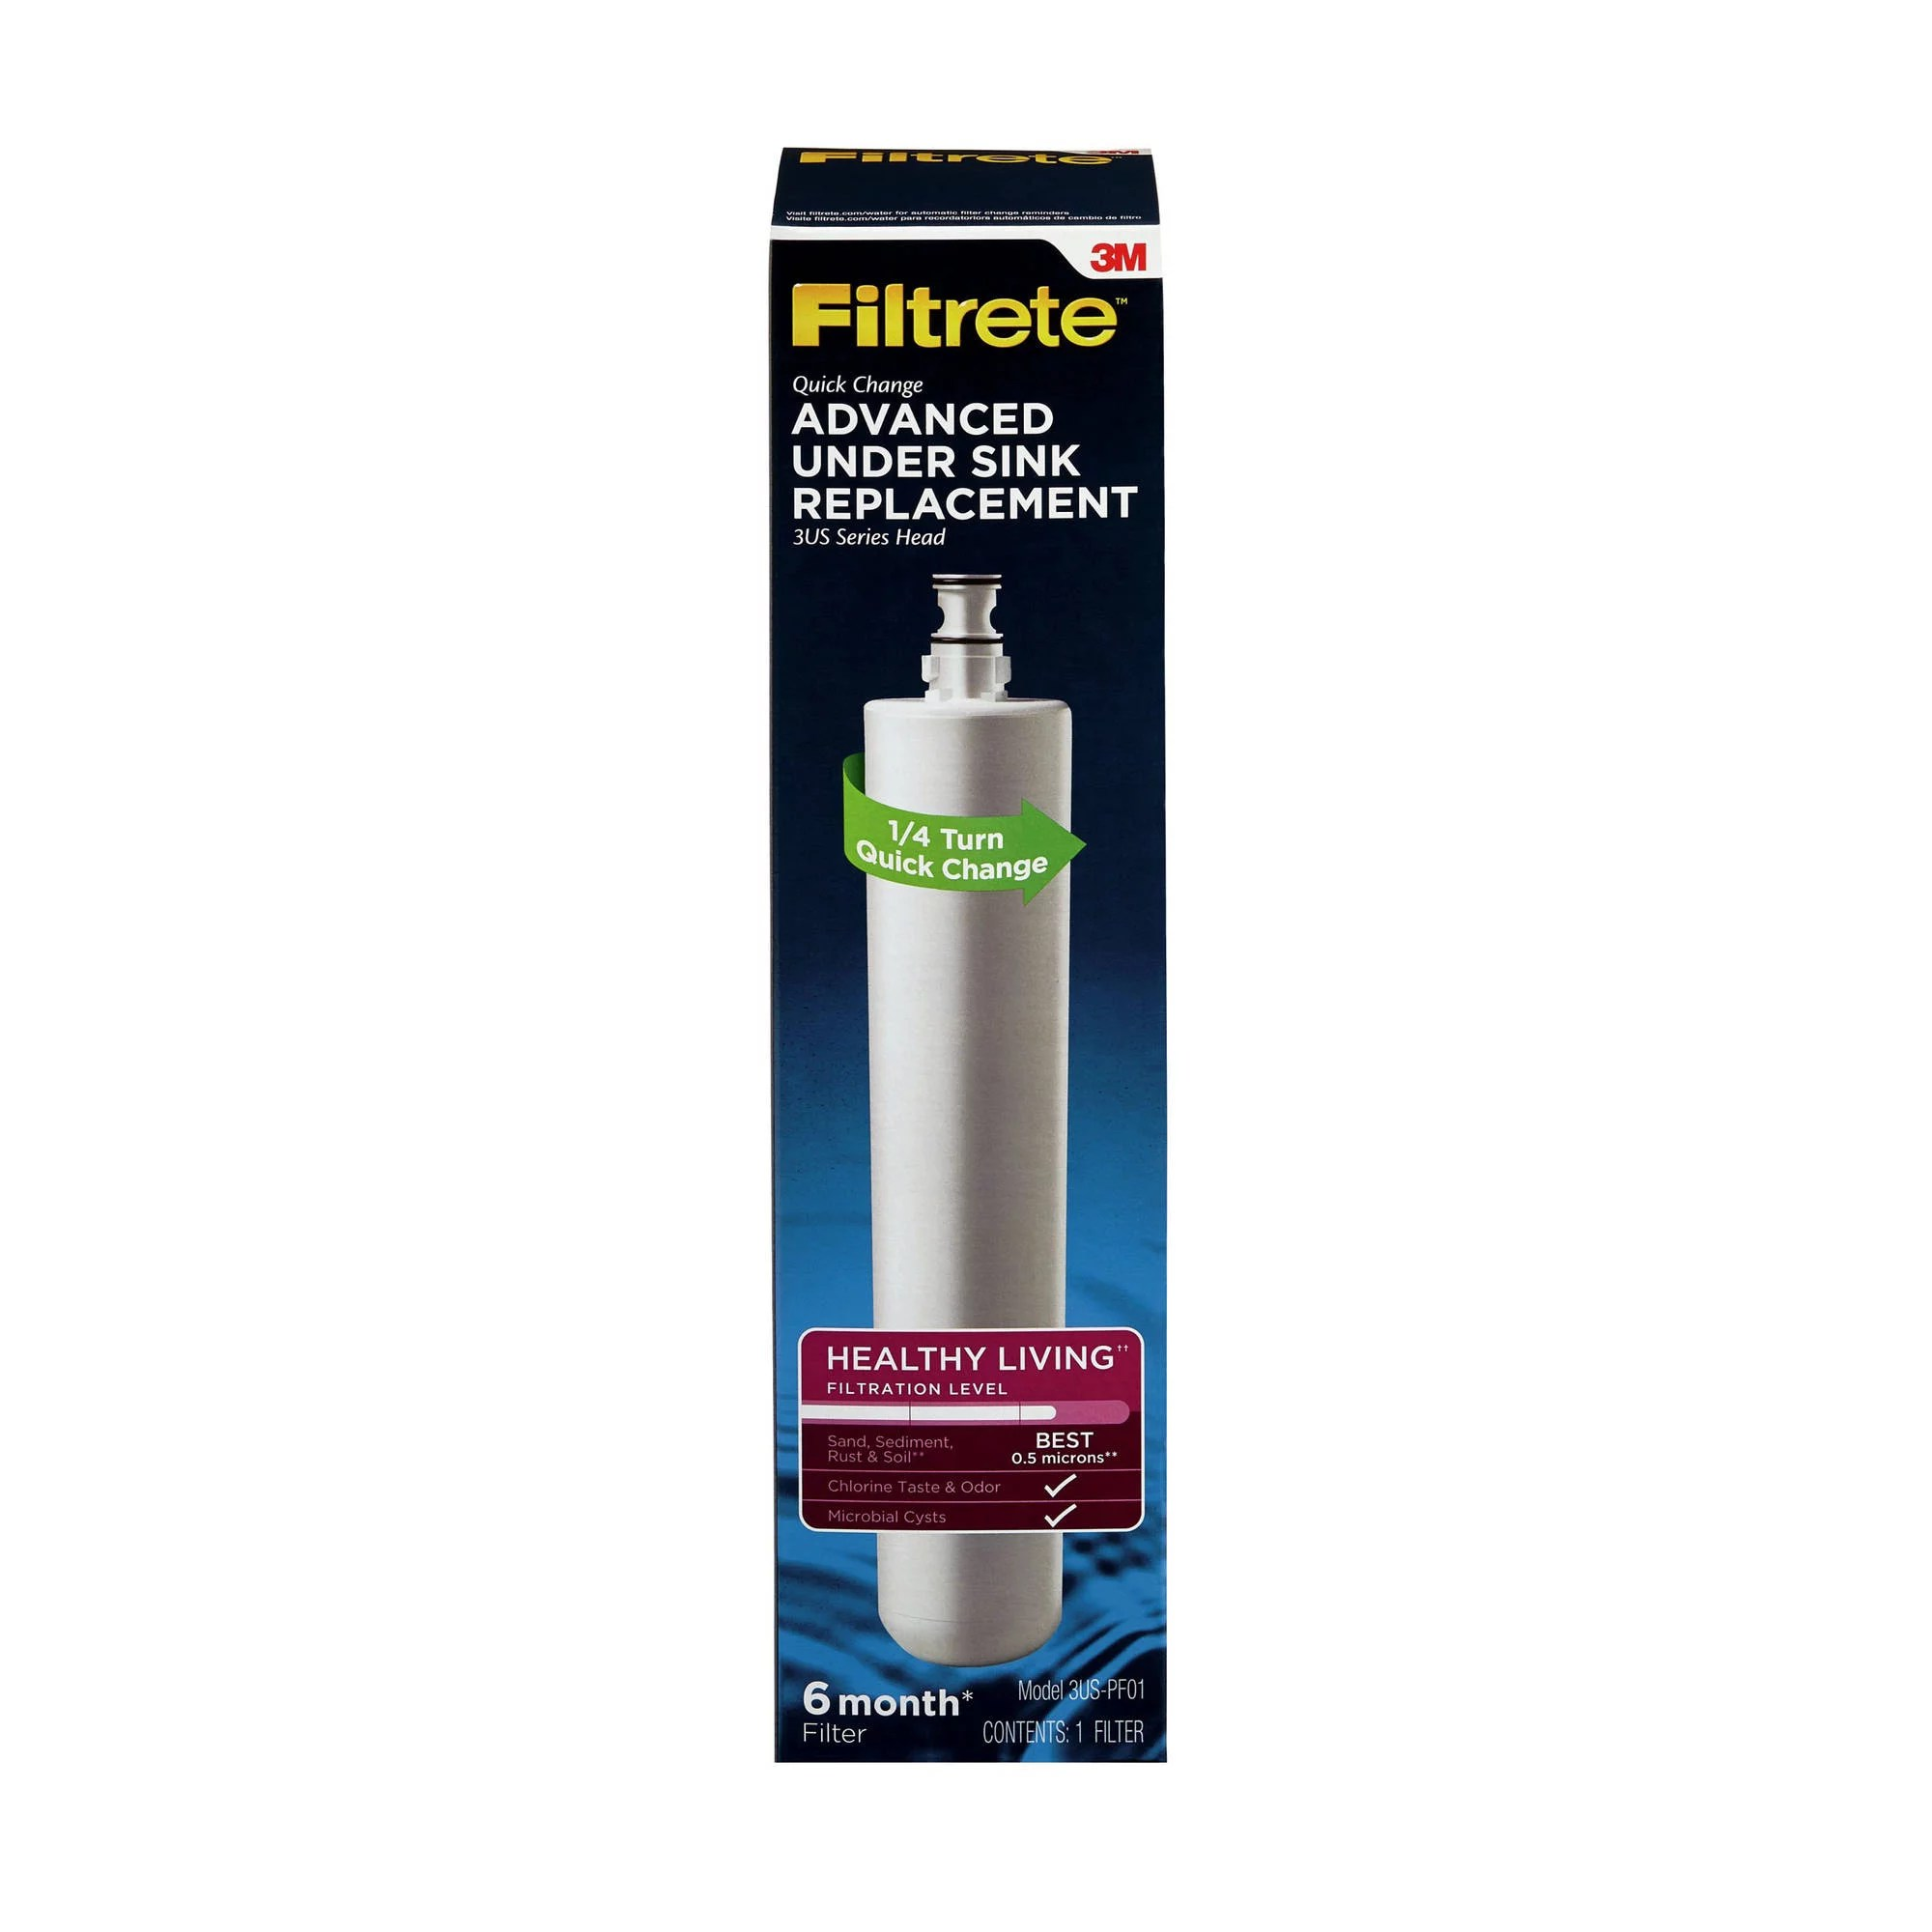 3m filtrete under sink advanced replacement water filter